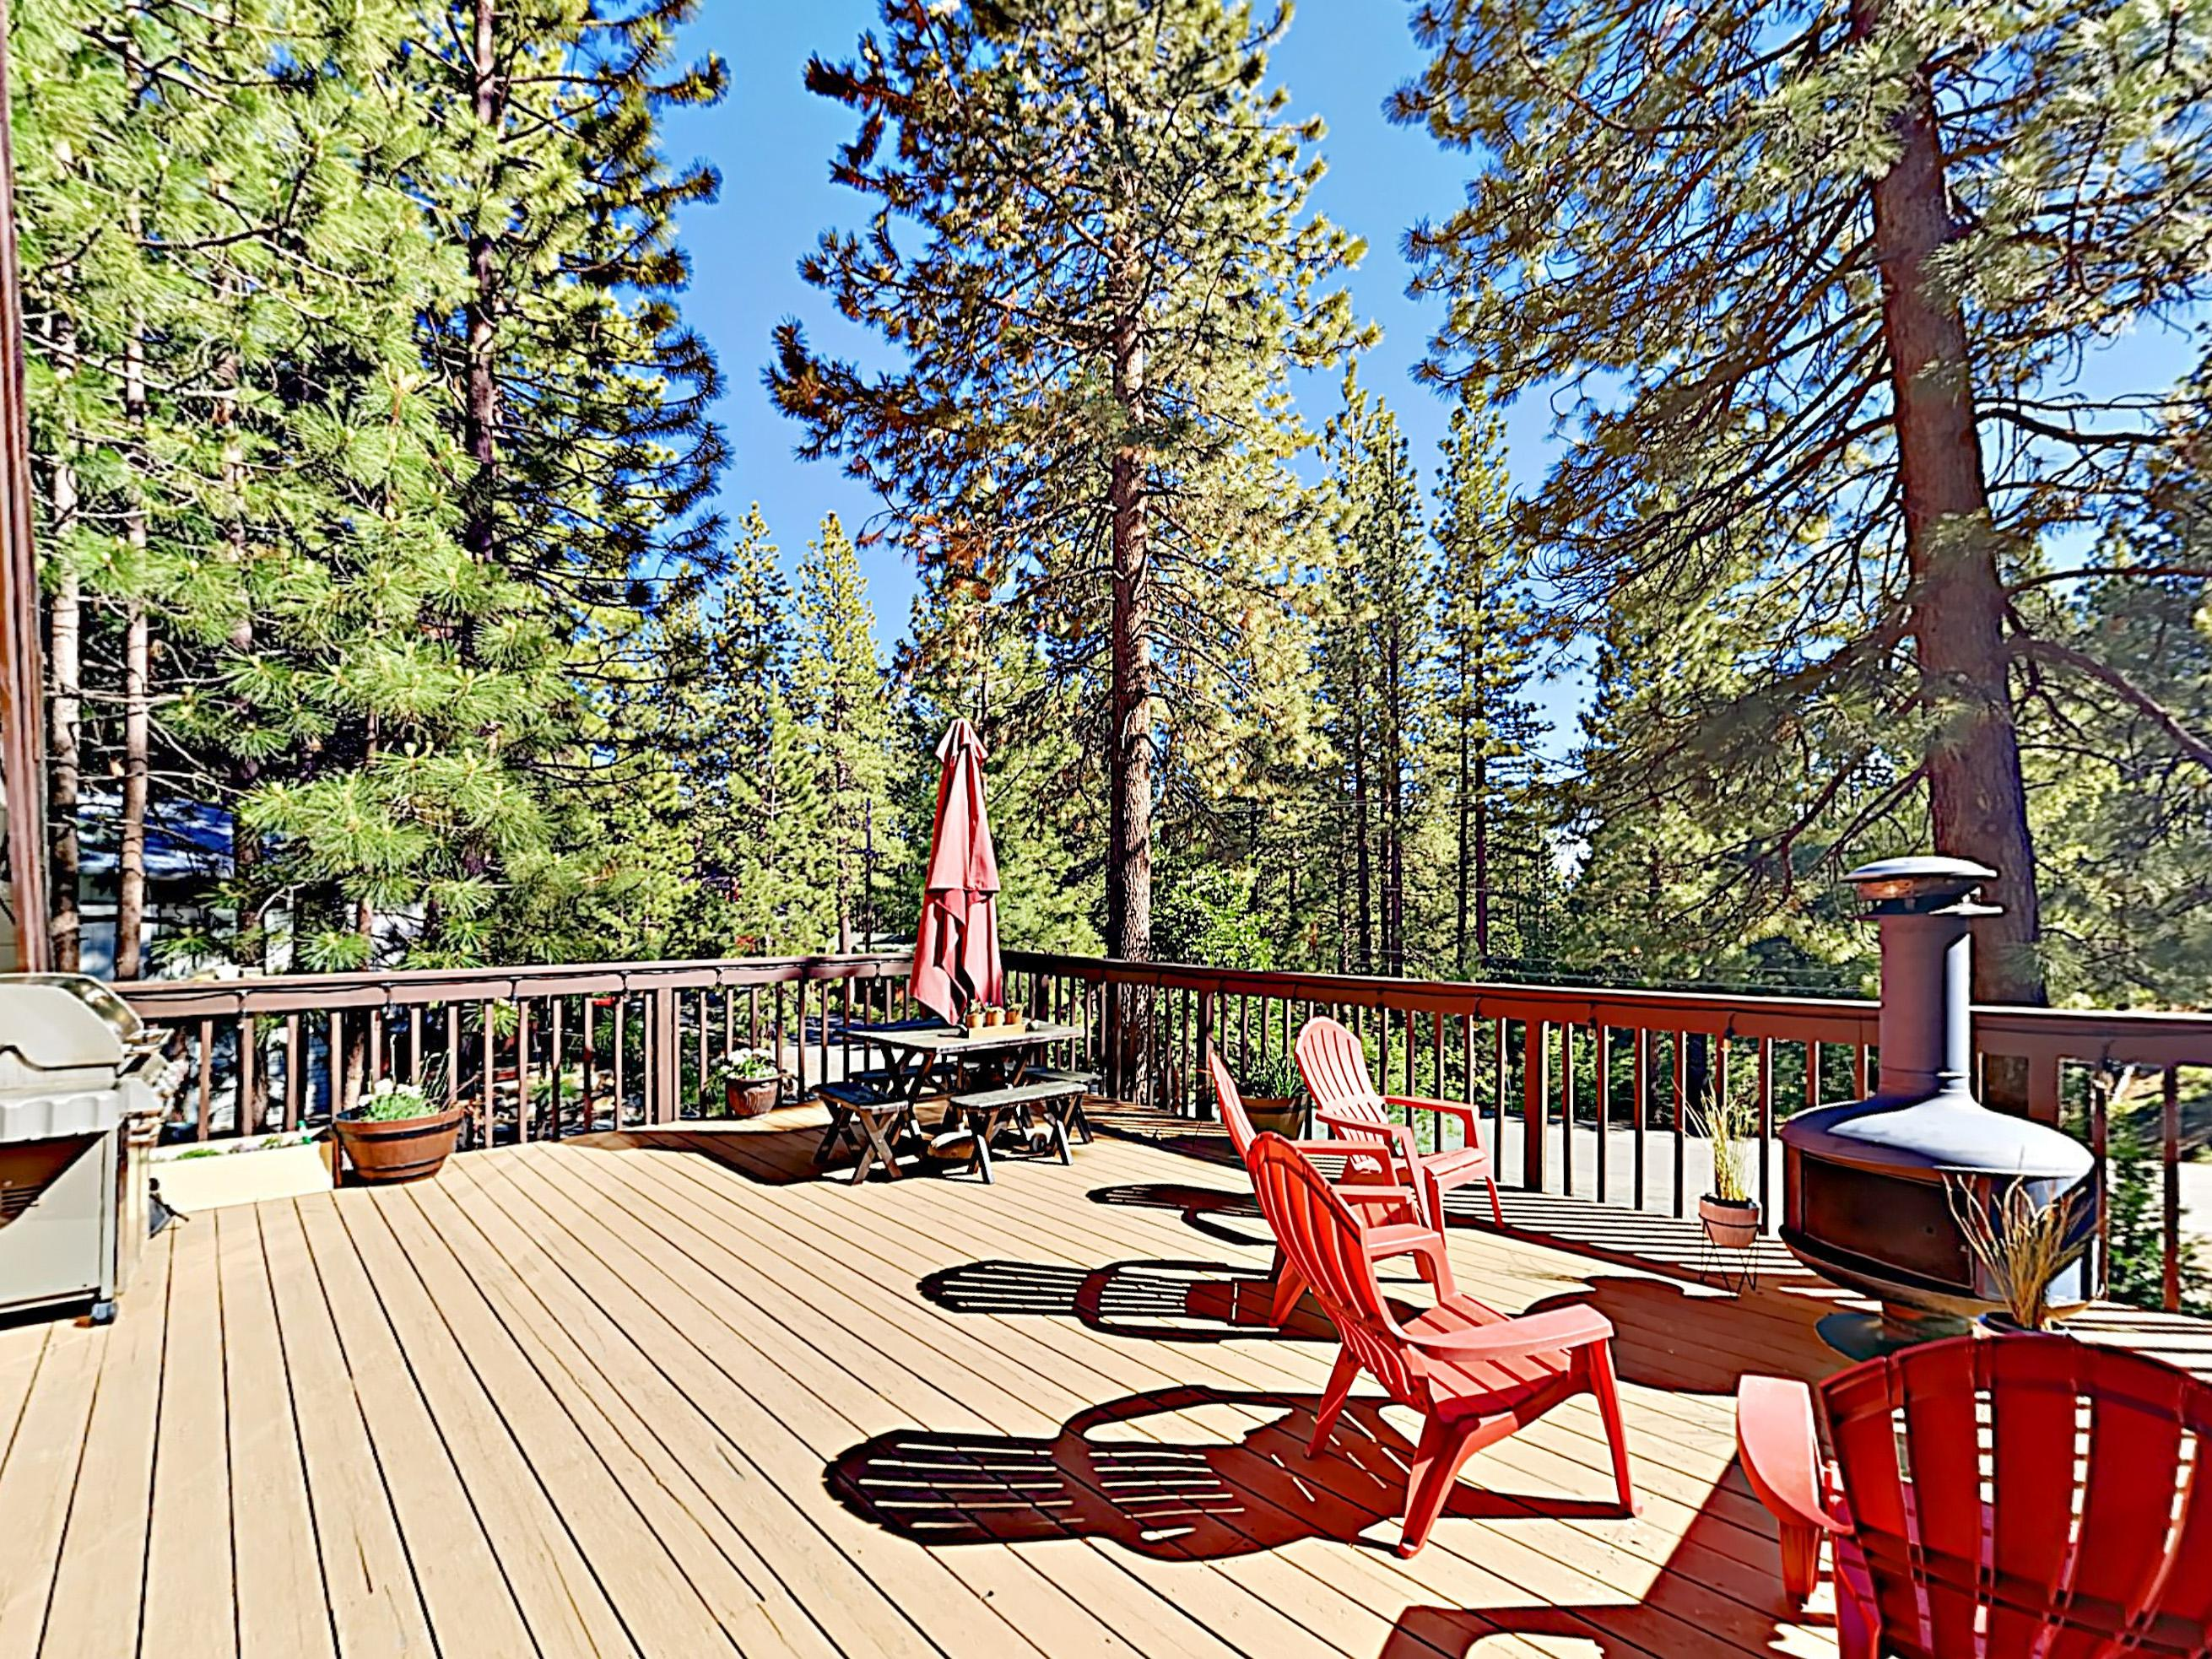 Unwind on your south-facing deck, featuring a picnic table, gas grill, outdoor seating, and chimenea.